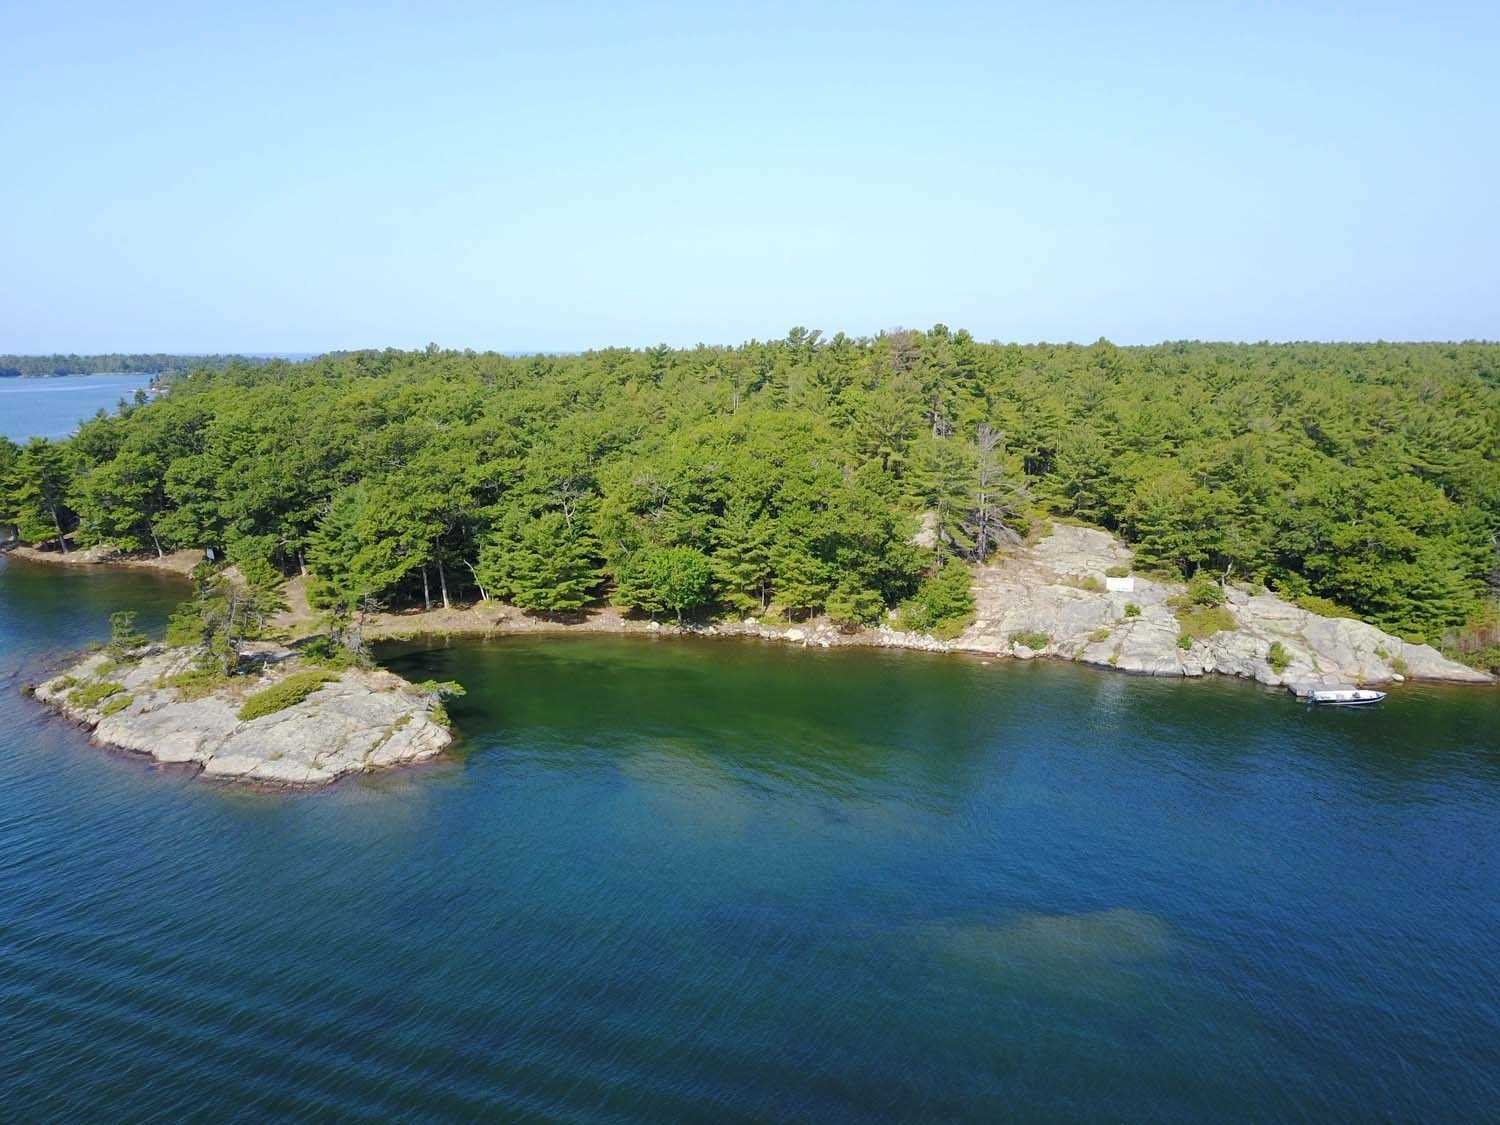 Vacant Island Lot 2.47 Ac, 855' Shoreline Water Frontage, 600'+ Lot Depth Into Champlain Monument Island. 1Km Paddle To The Famous Ojibway Club, In The Center Of The Island Community. 15 Min Boat Ride From Marinas. Short Walk Through The Woods To The Historic Champlain Monument. Views For Miles Onto Islands In The Exotic Georgian Bay Fresh Water Granite & Treed Pointe Au Baril Community. Hydro Next Door Or Solar Option.